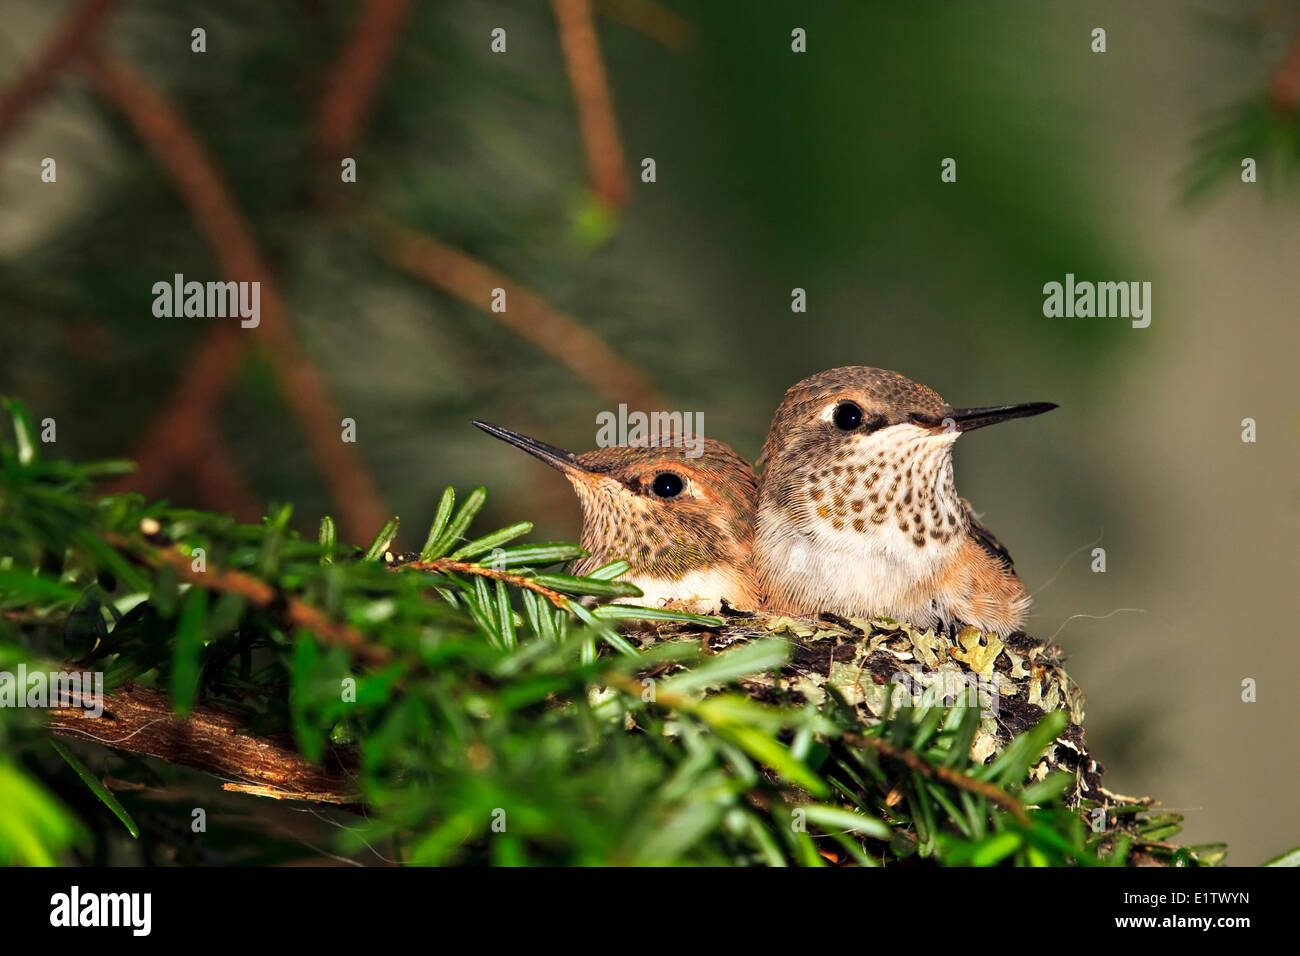 Rufous hummingbird nest with two 14 day old baby chicks, Selasphorus rufus, Northern Vancouver Island, Britih Columbia, - Stock Image